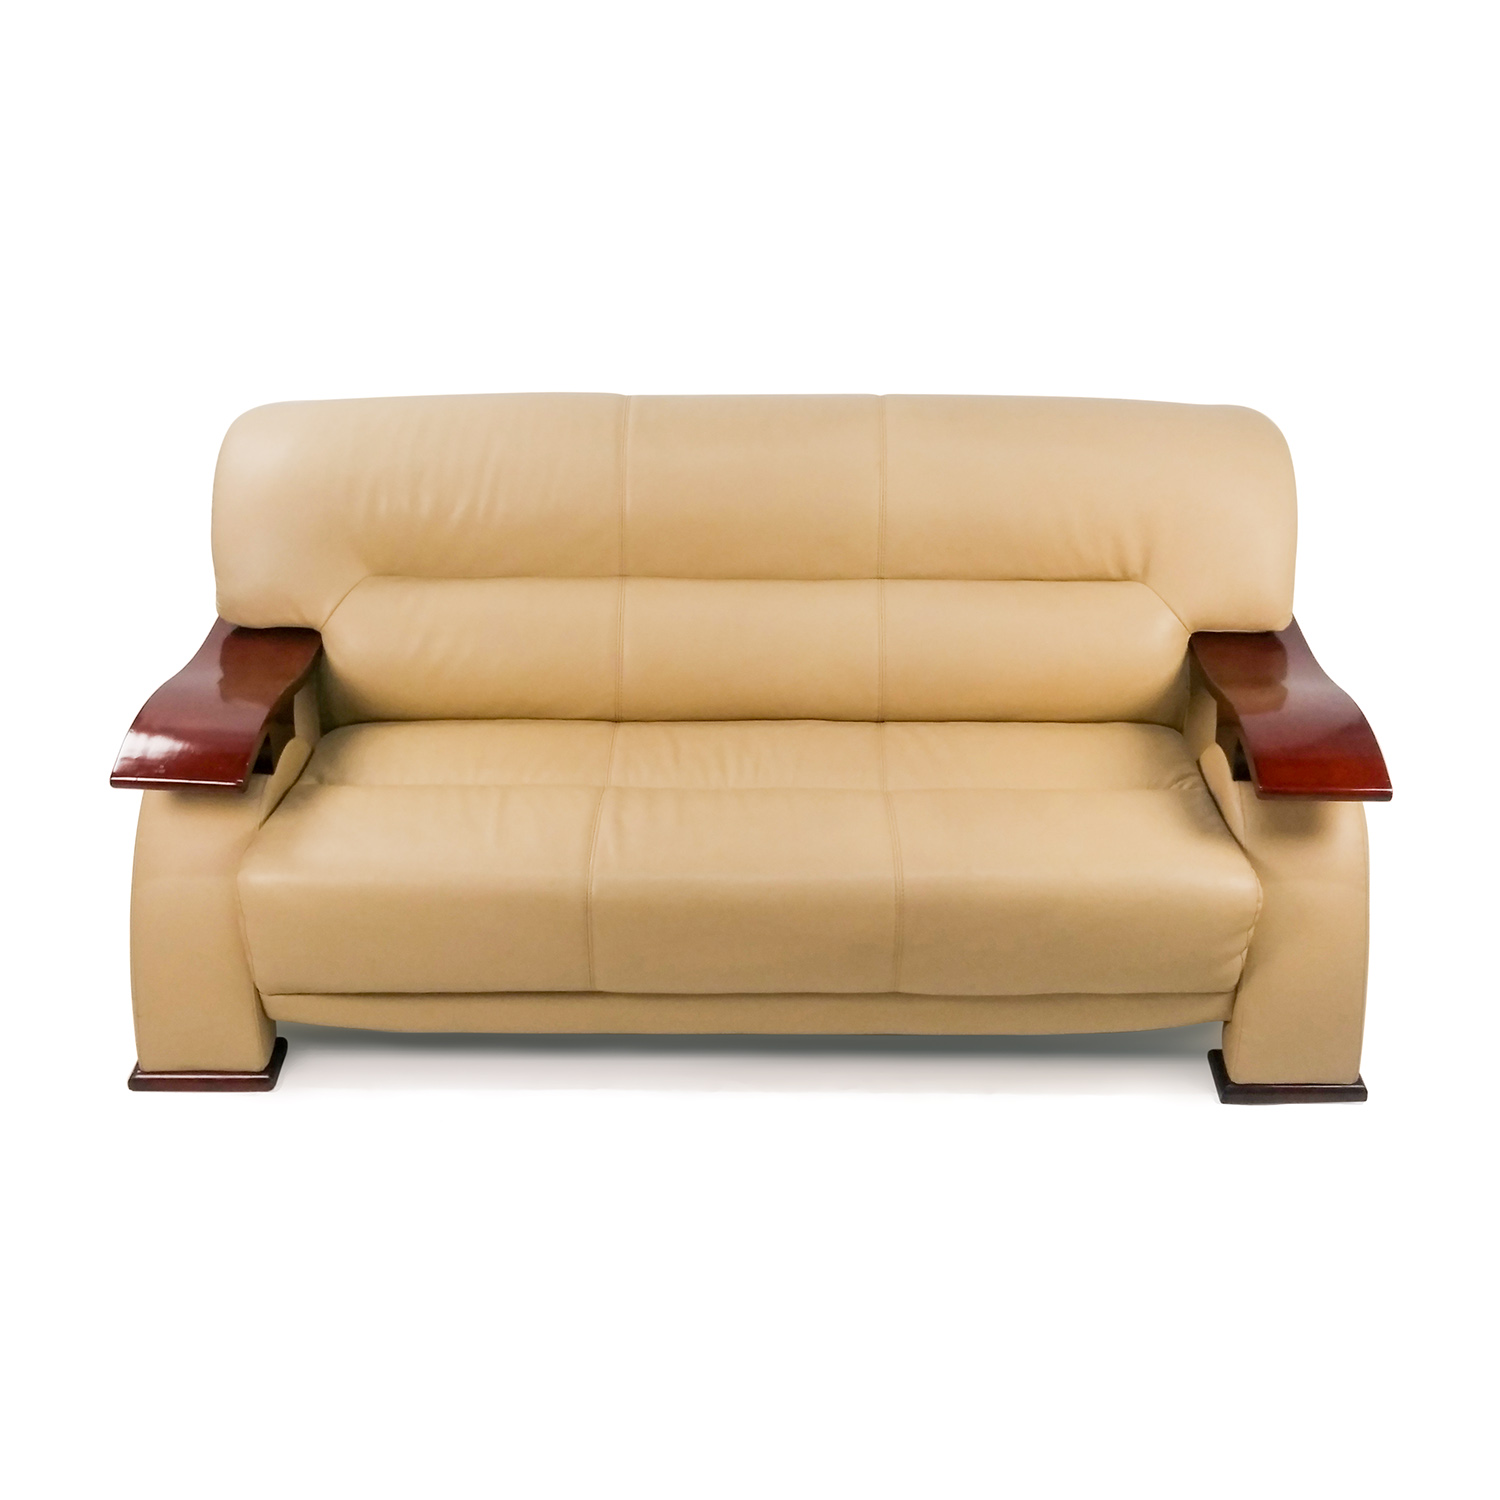 84 off unknown brand contemporary beige leather sofa with wood arms sofas Contemporary leather sofa